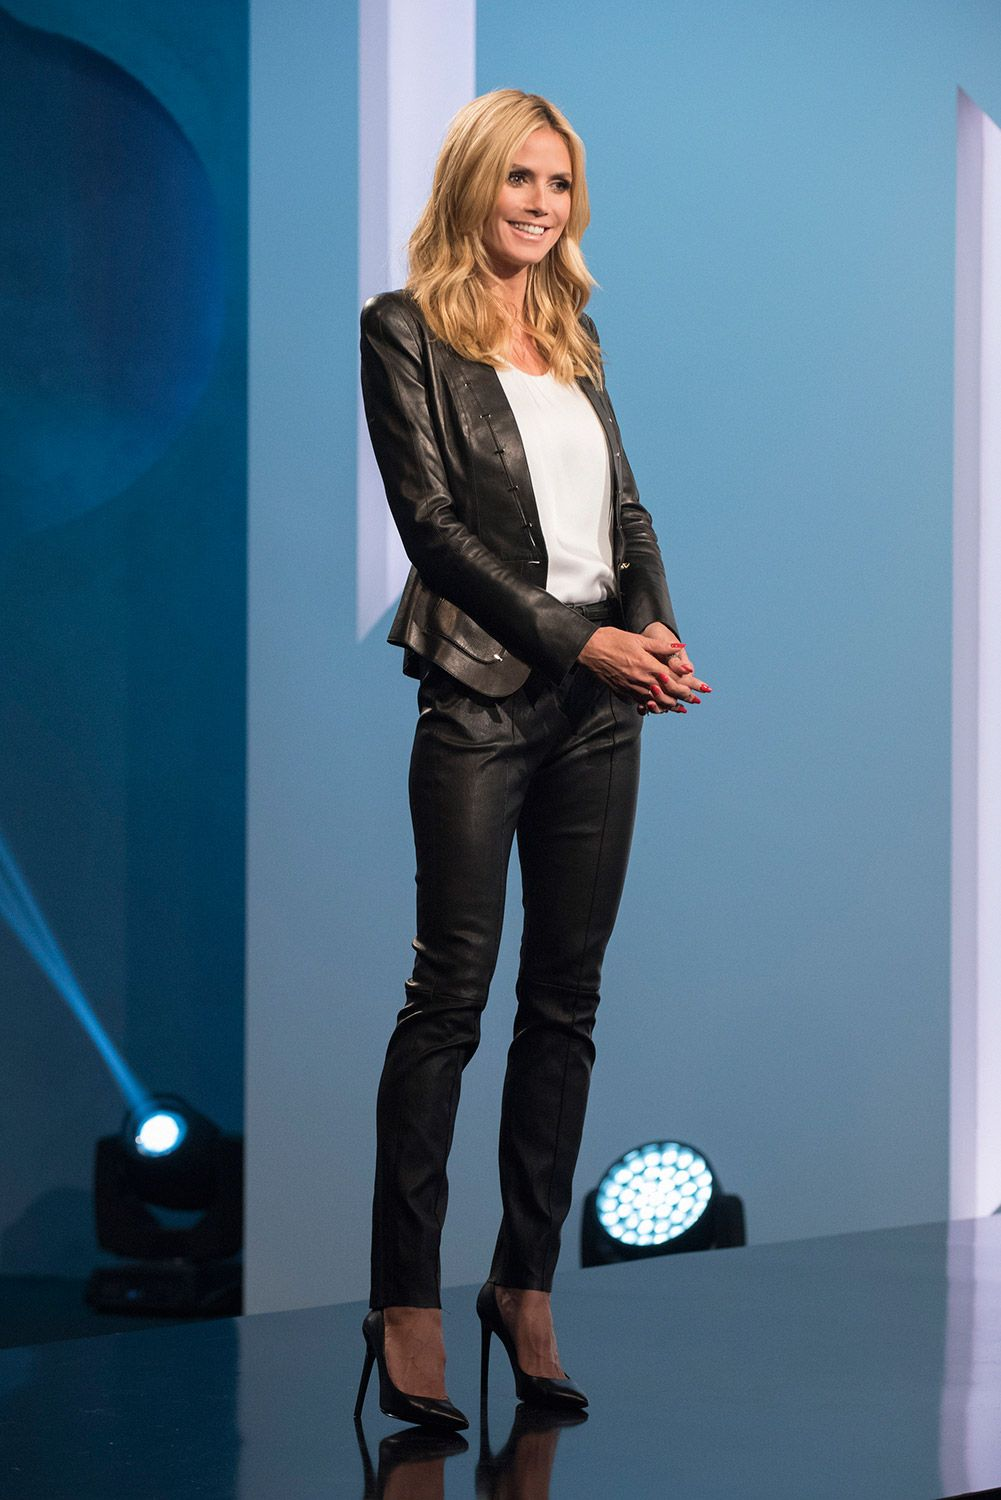 c82aa87f19 Heidi Klum s all leather look this week on Project Runway.